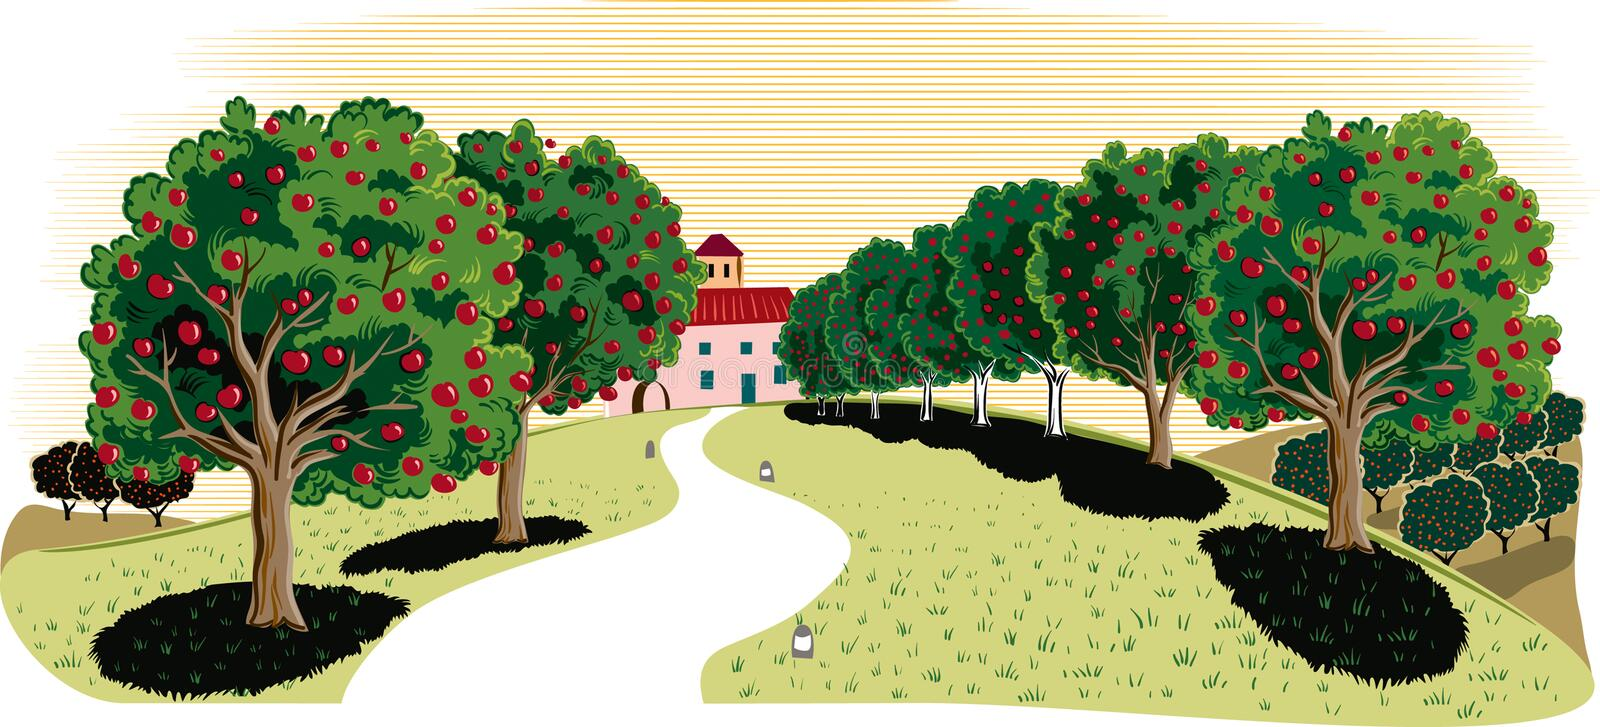 Apple trees in an orchard,. With an agricultural landscape in the background stock illustration